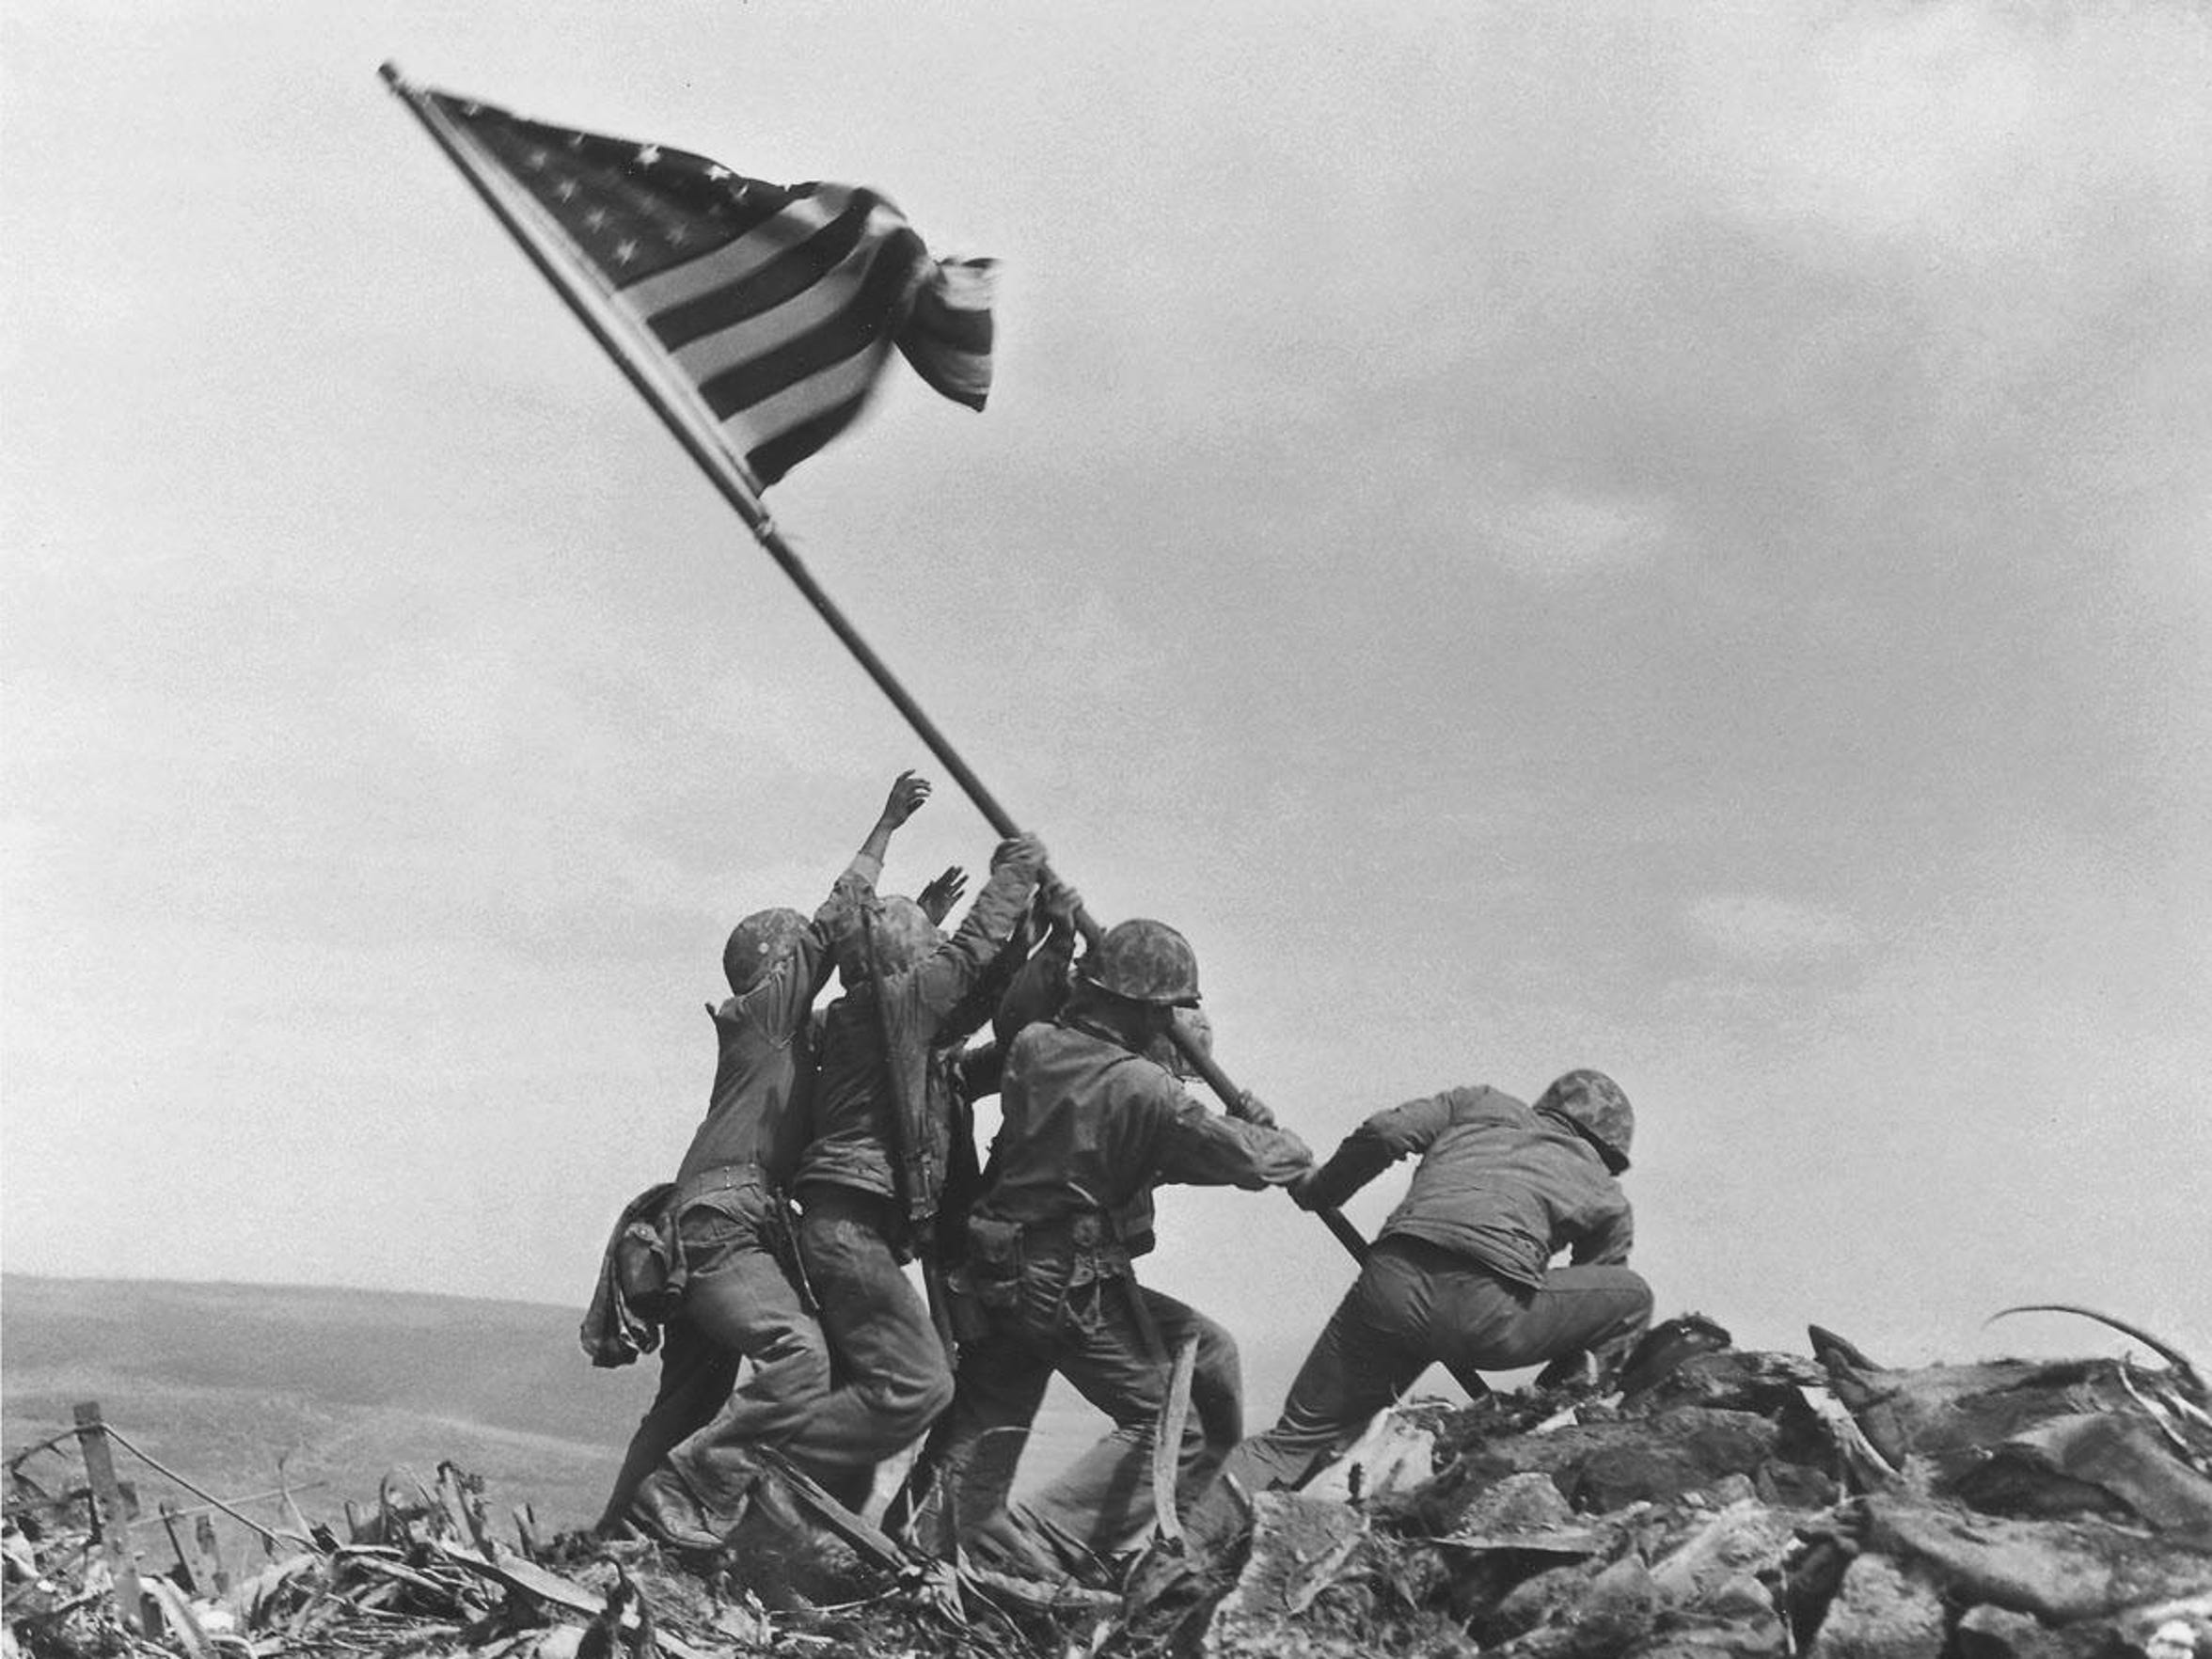 U.S. soldiers on Feb. 23, 1945, raise the American flag atop Mount Suribachi, Iwo Jima, Japan.